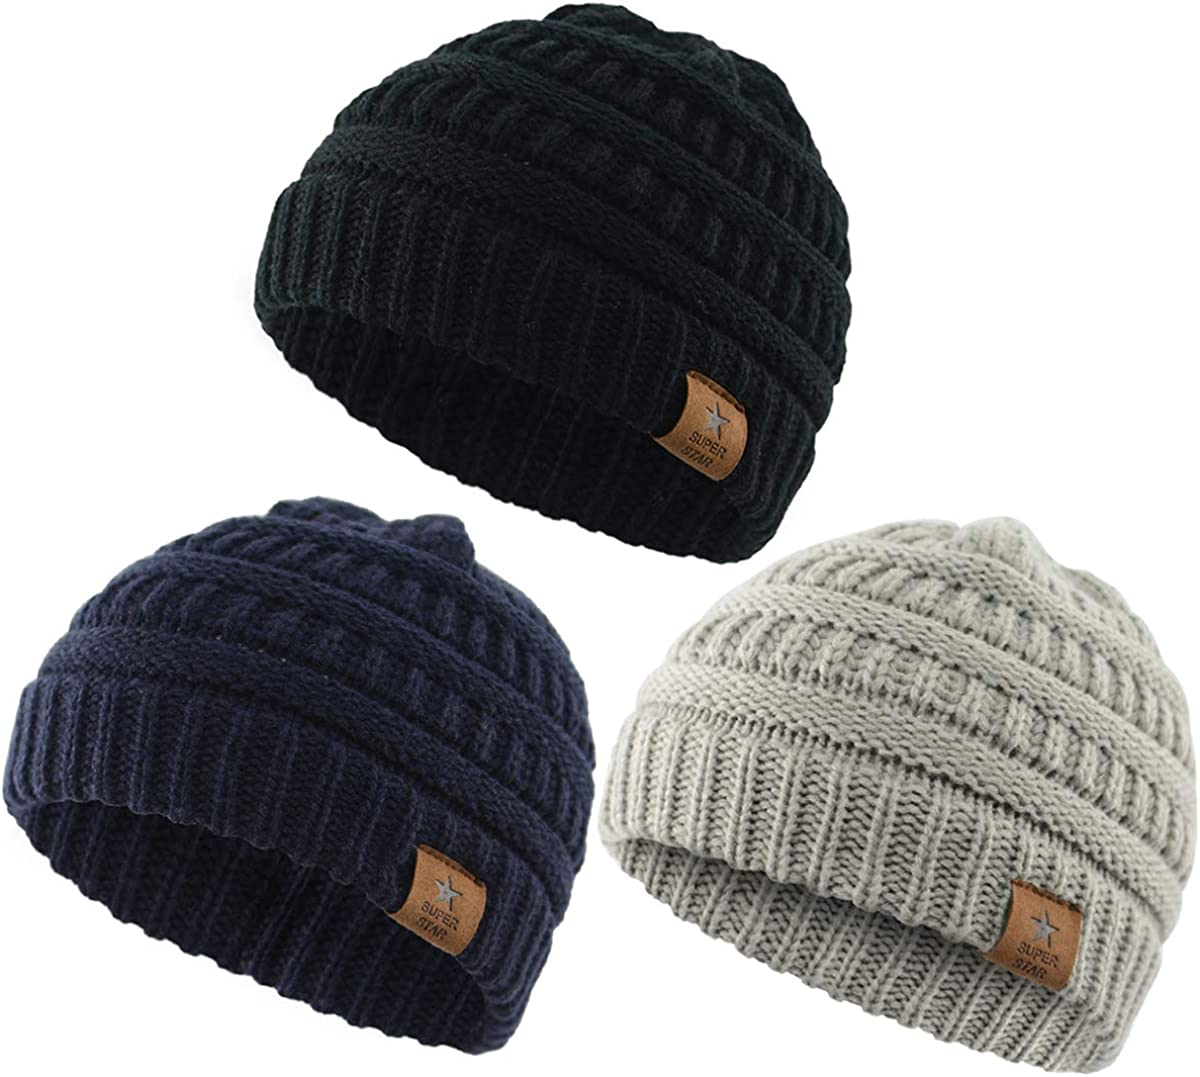 Durio Soft Warm Knitted Baby Hats Caps Cute Cozy Chunky Winter Infant Toddler Baby Beanies for Boys Girls 3 Pack Black & Light Grey & Navy: Clothing